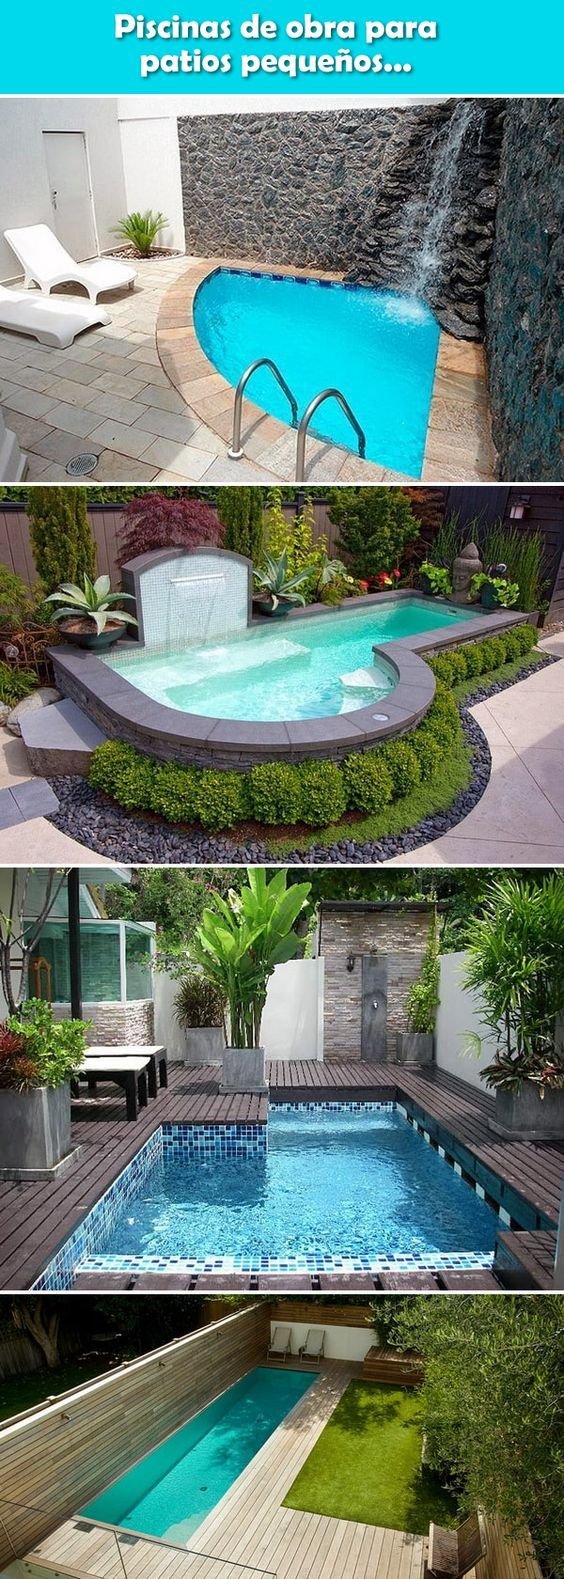 M s de 25 ideas incre bles sobre peque as piscinas en for Piscina espacio reducido